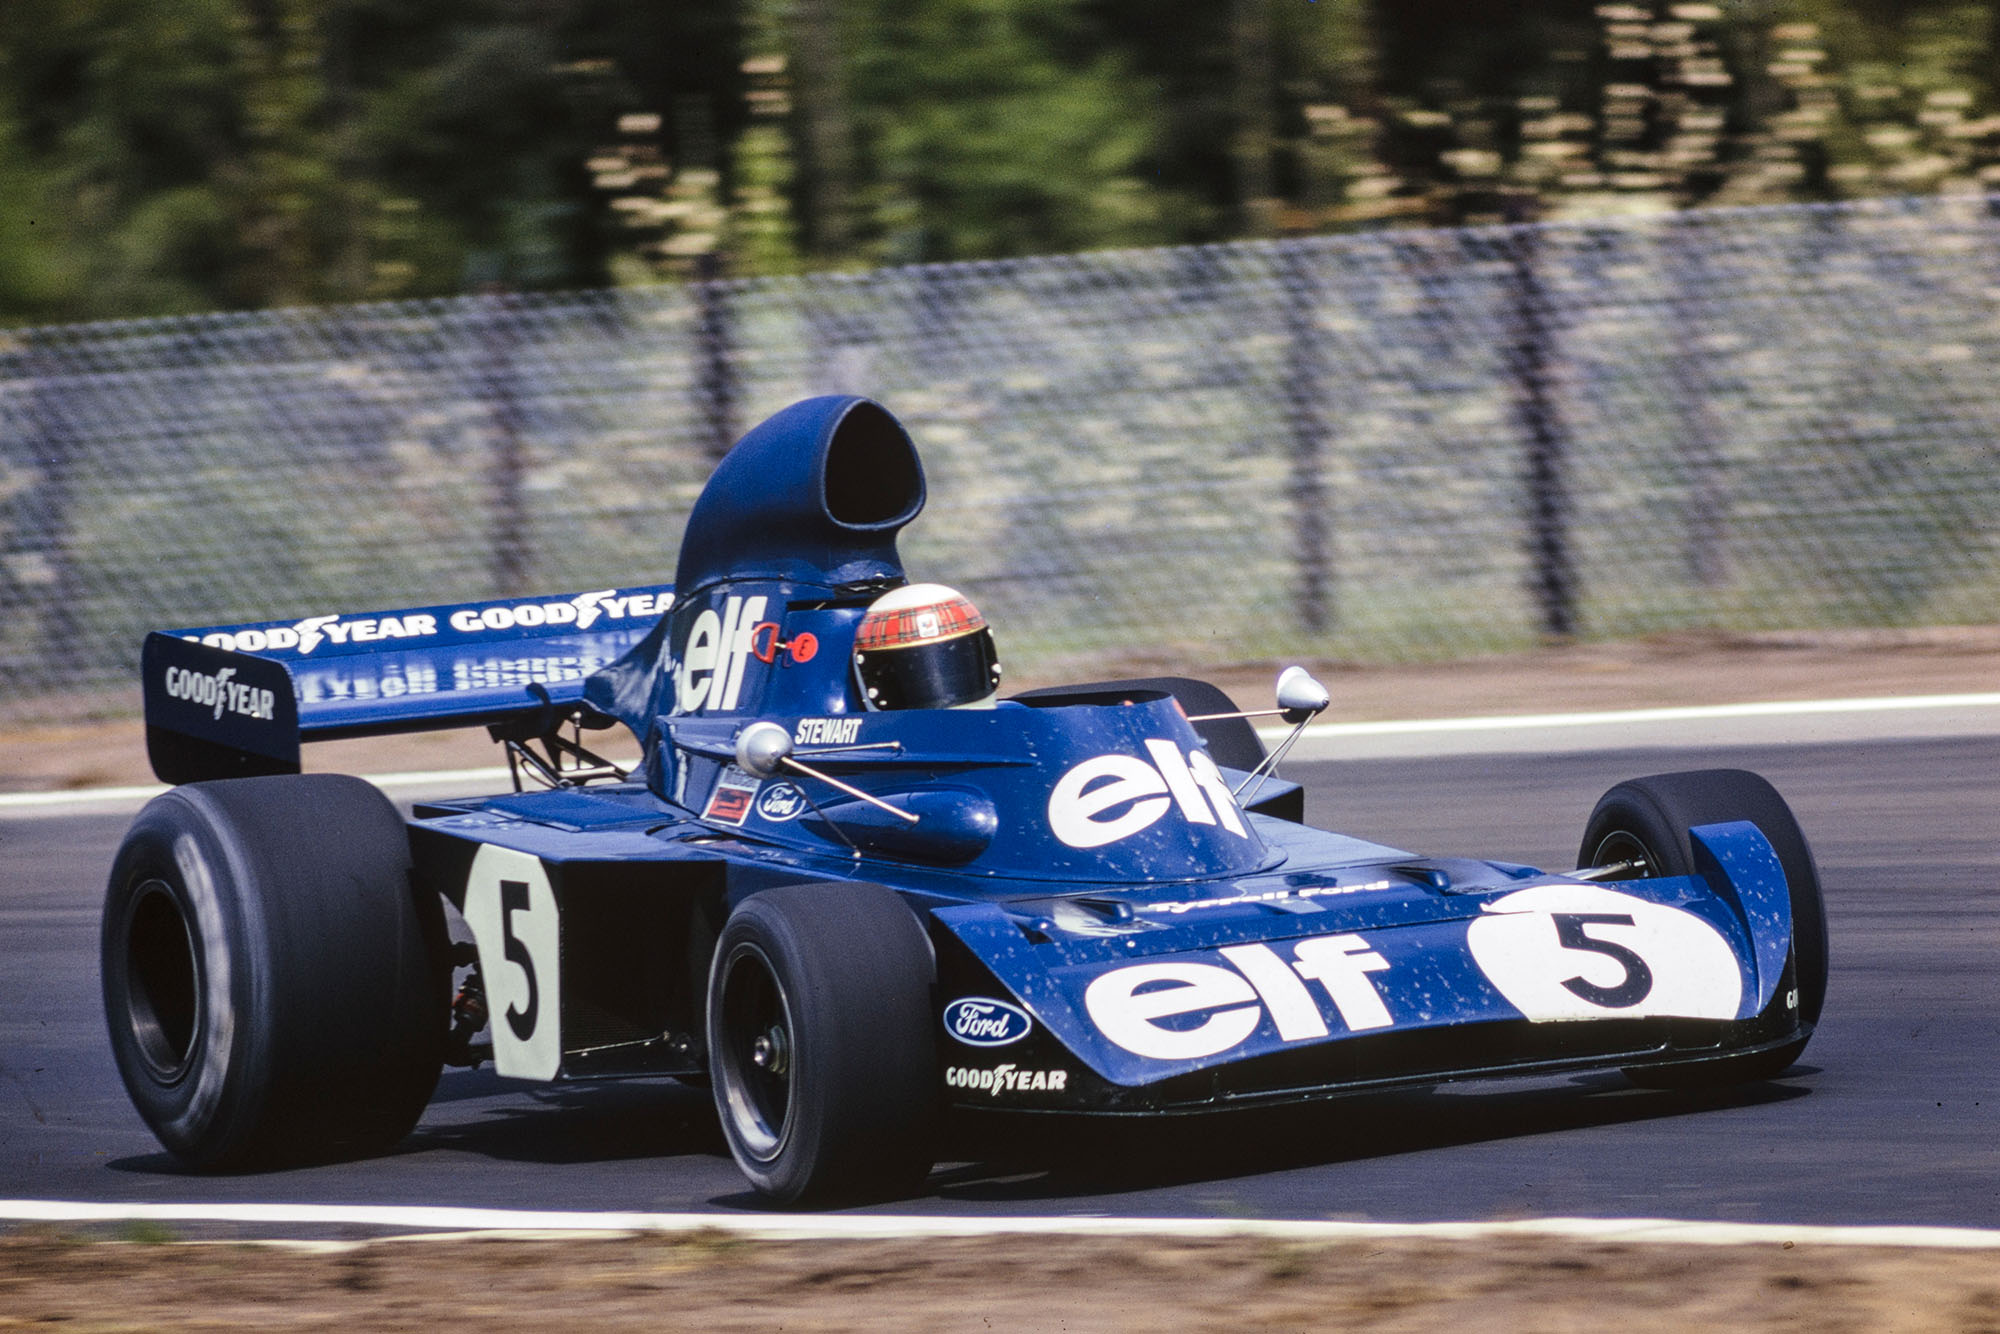 Jackie Stewart driving for Tyrrell at the 1973 Dutch Grand Prix, Zandvoort.